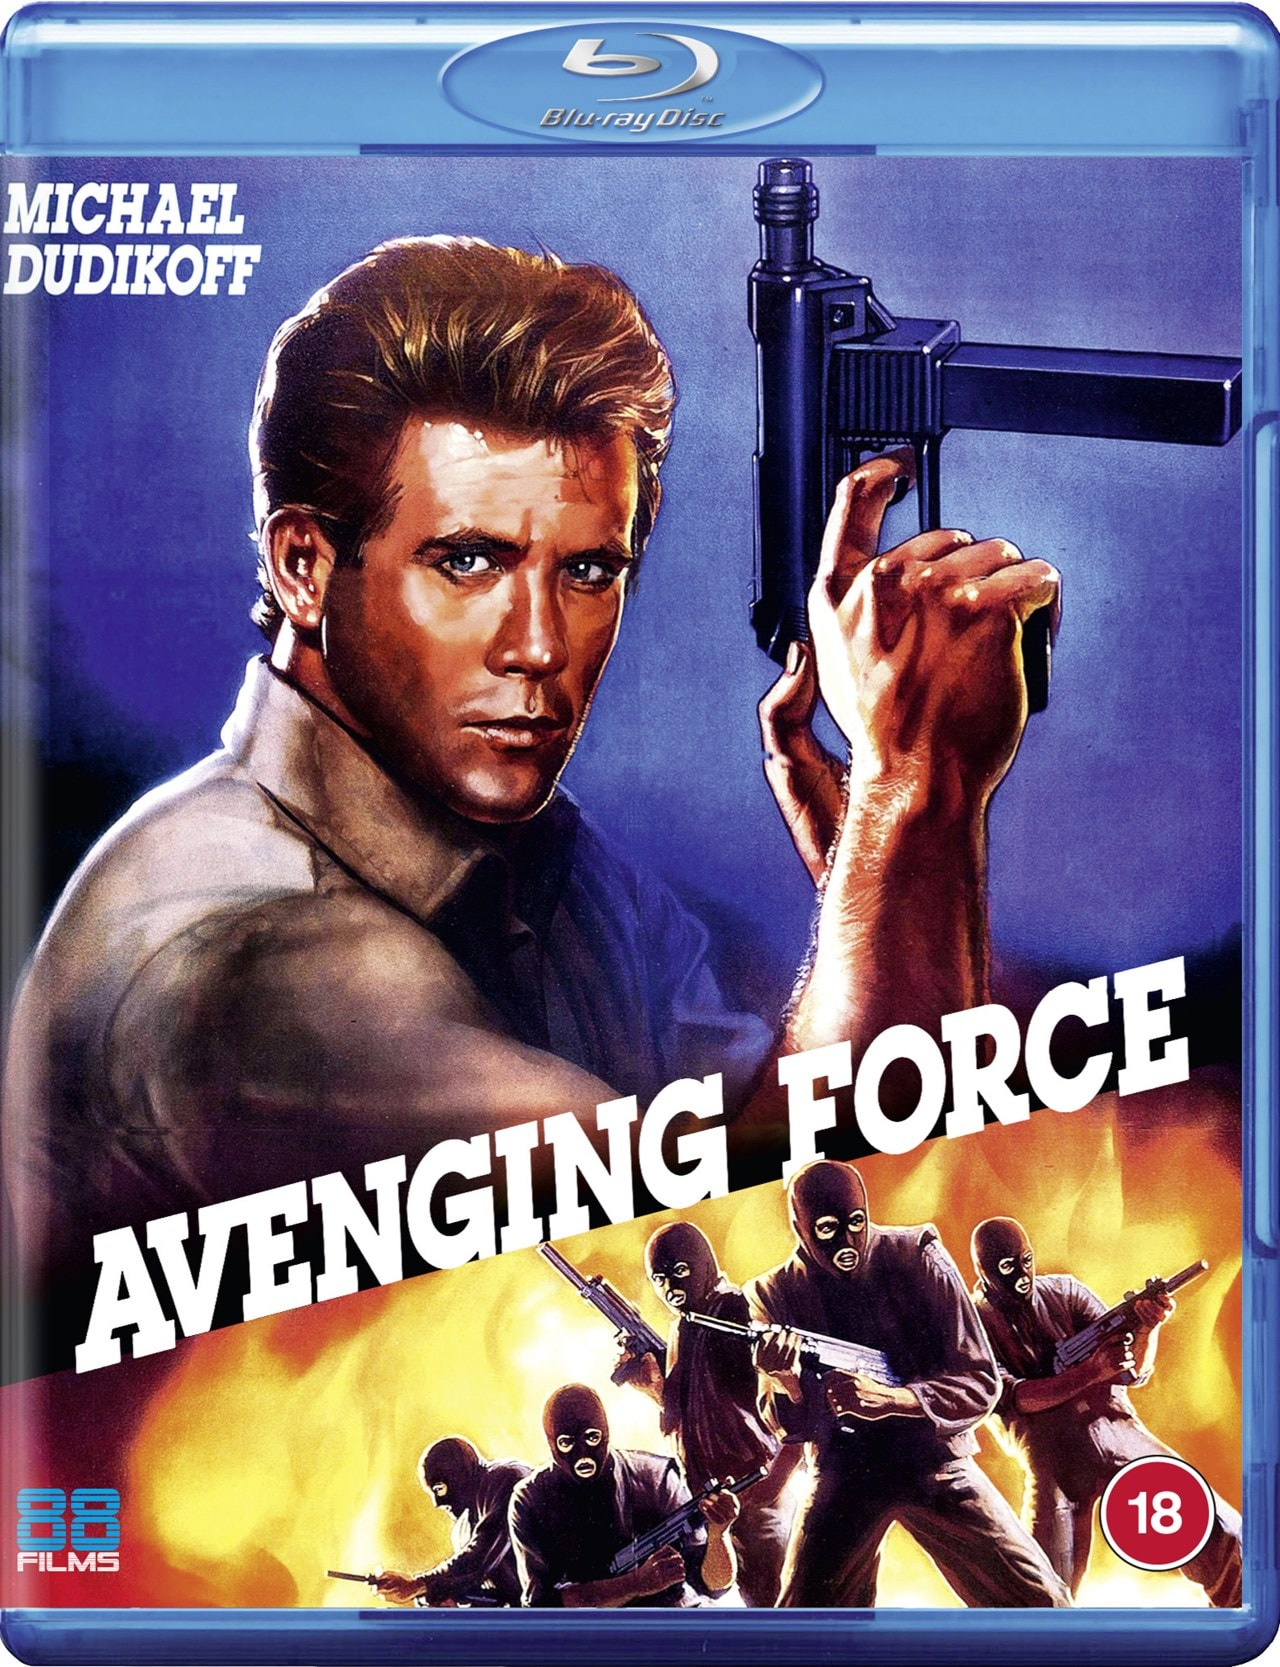 Avenging Force - 3